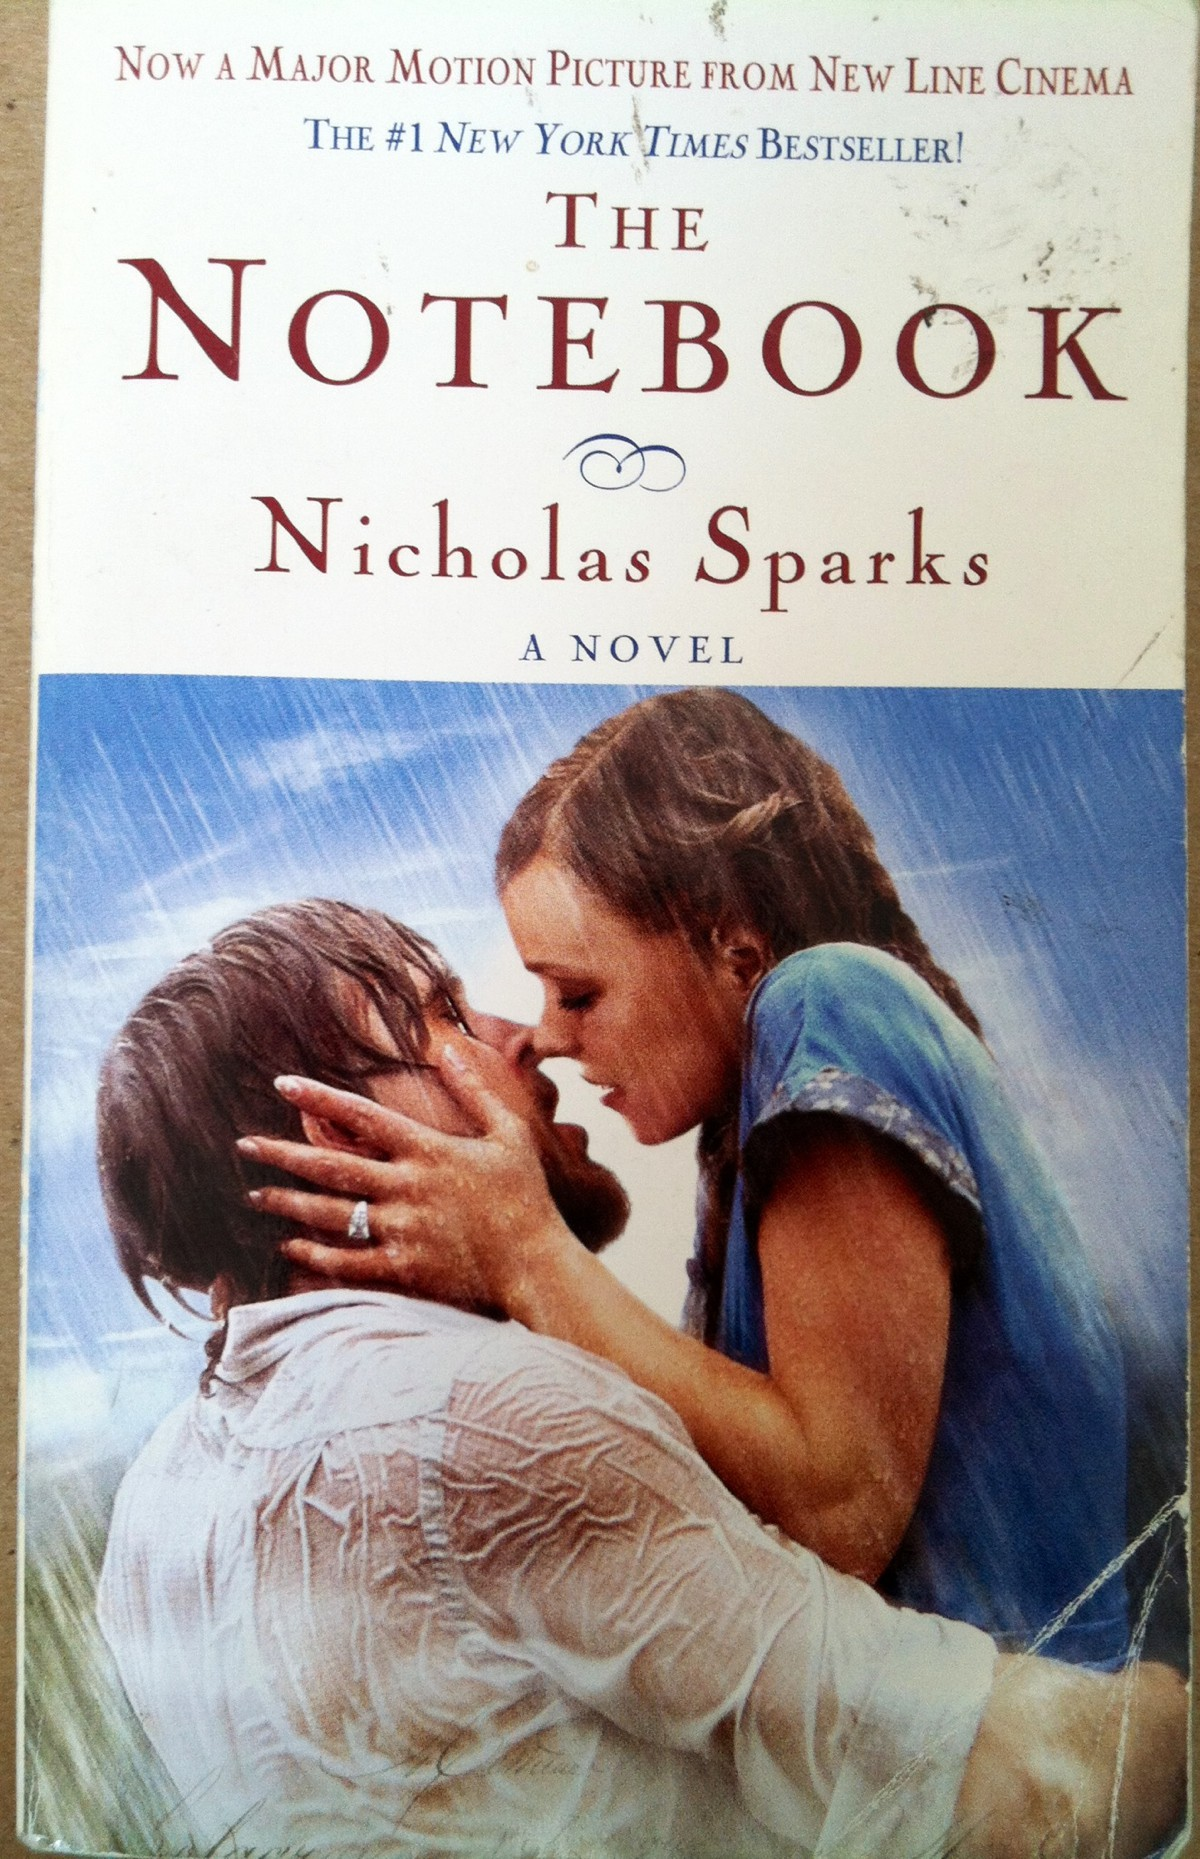 book report over the notebook